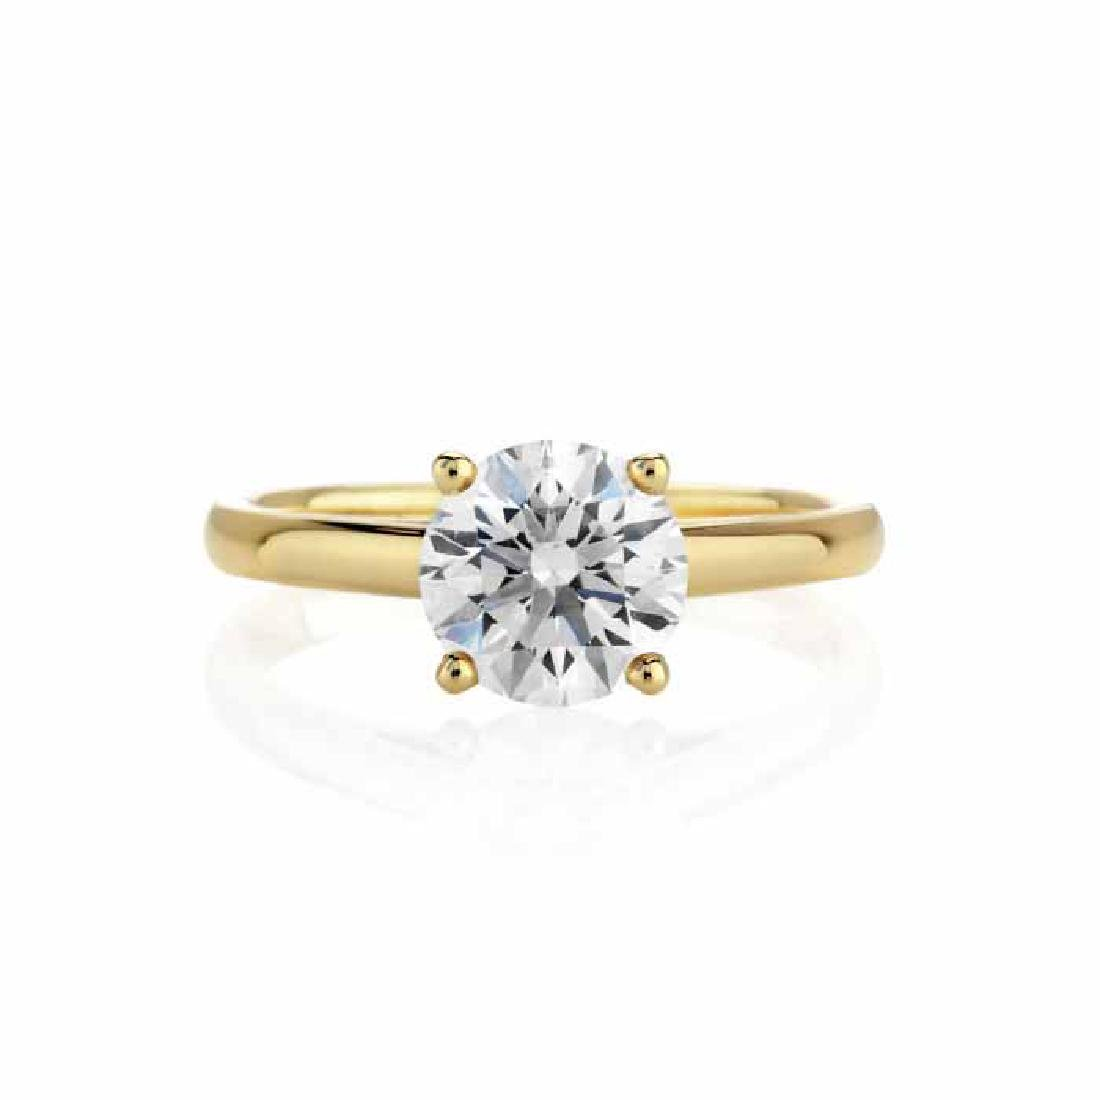 CERTIFIED 1 CTW D/VS1 ROUND DIAMOND SOLITAIRE RING IN 1